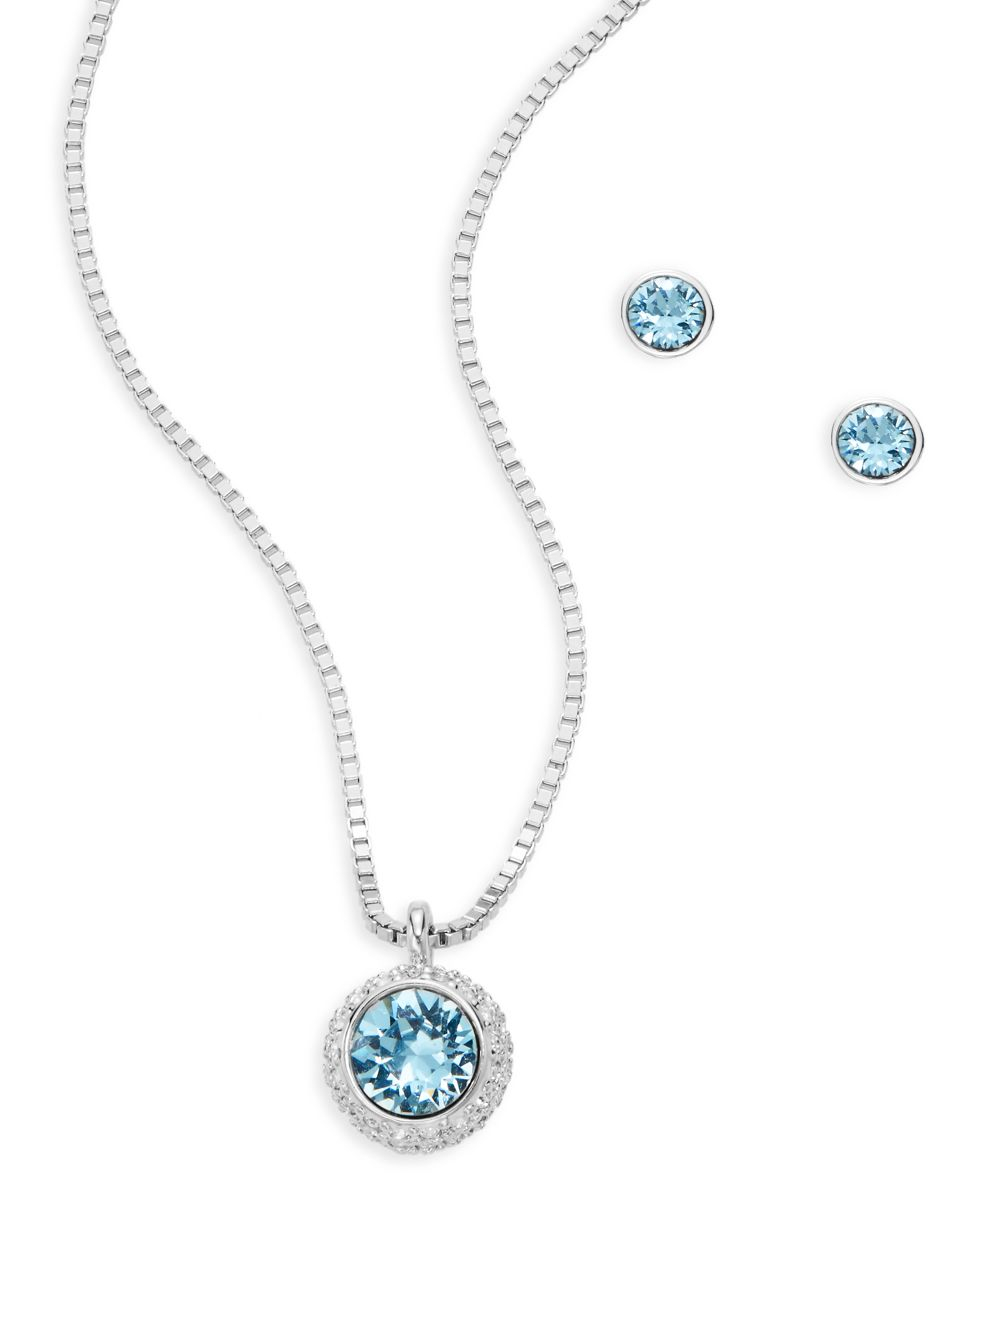 Swarovski Blue Necklace And Earrings - Necklace Wallpaper ... c81800ca3f